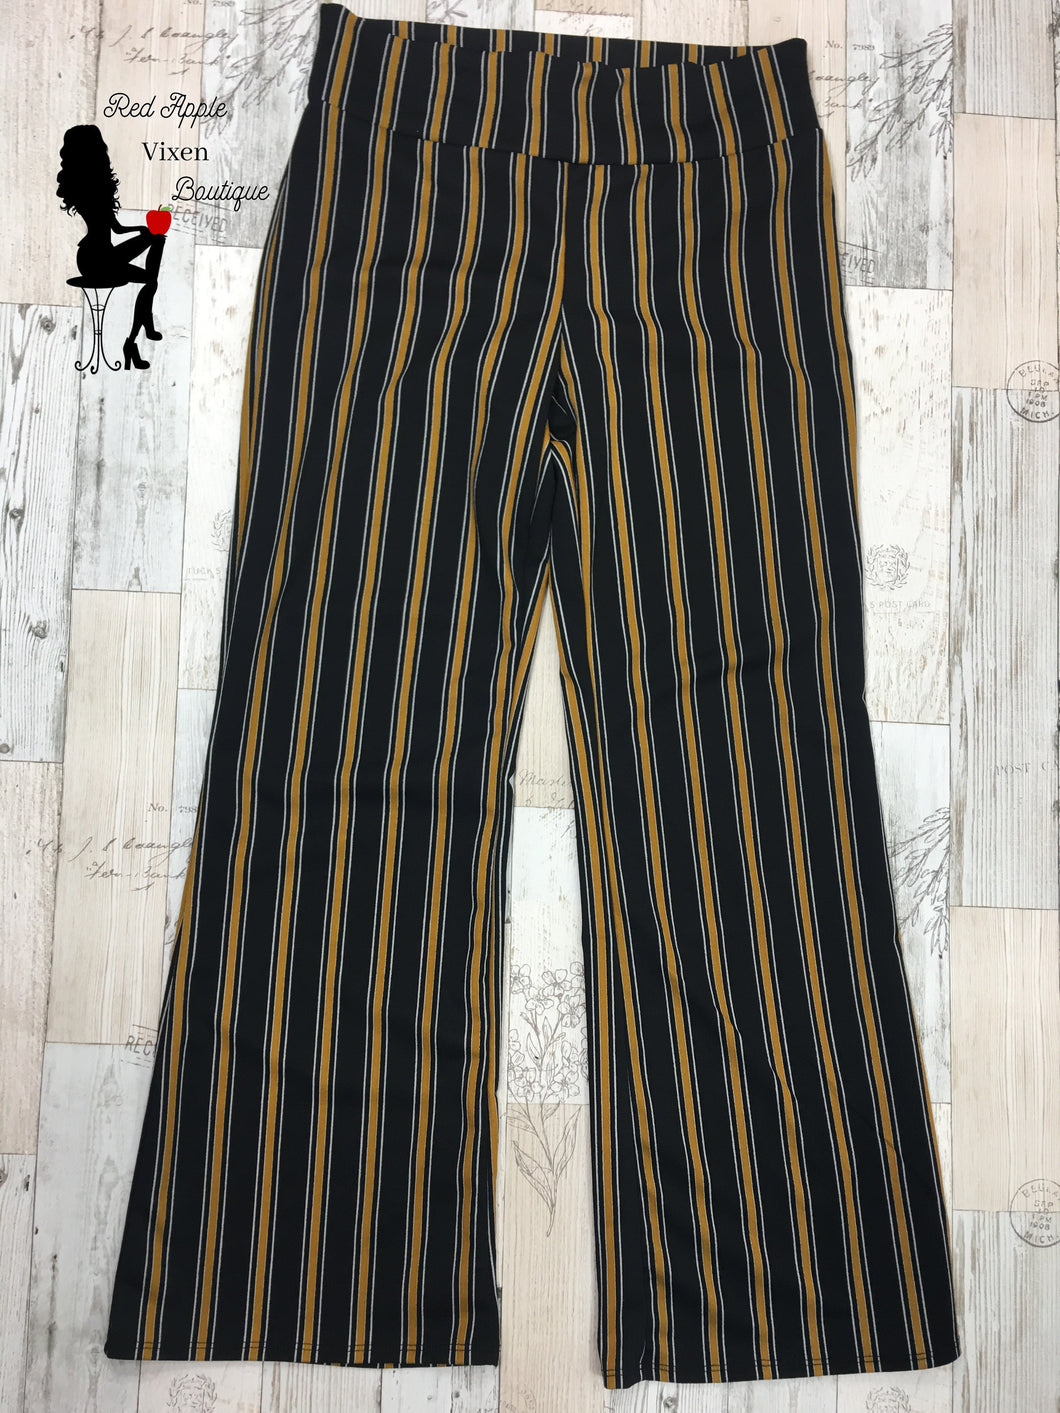 Black and Gold Striped Pants - Red Apple Vixen Boutique